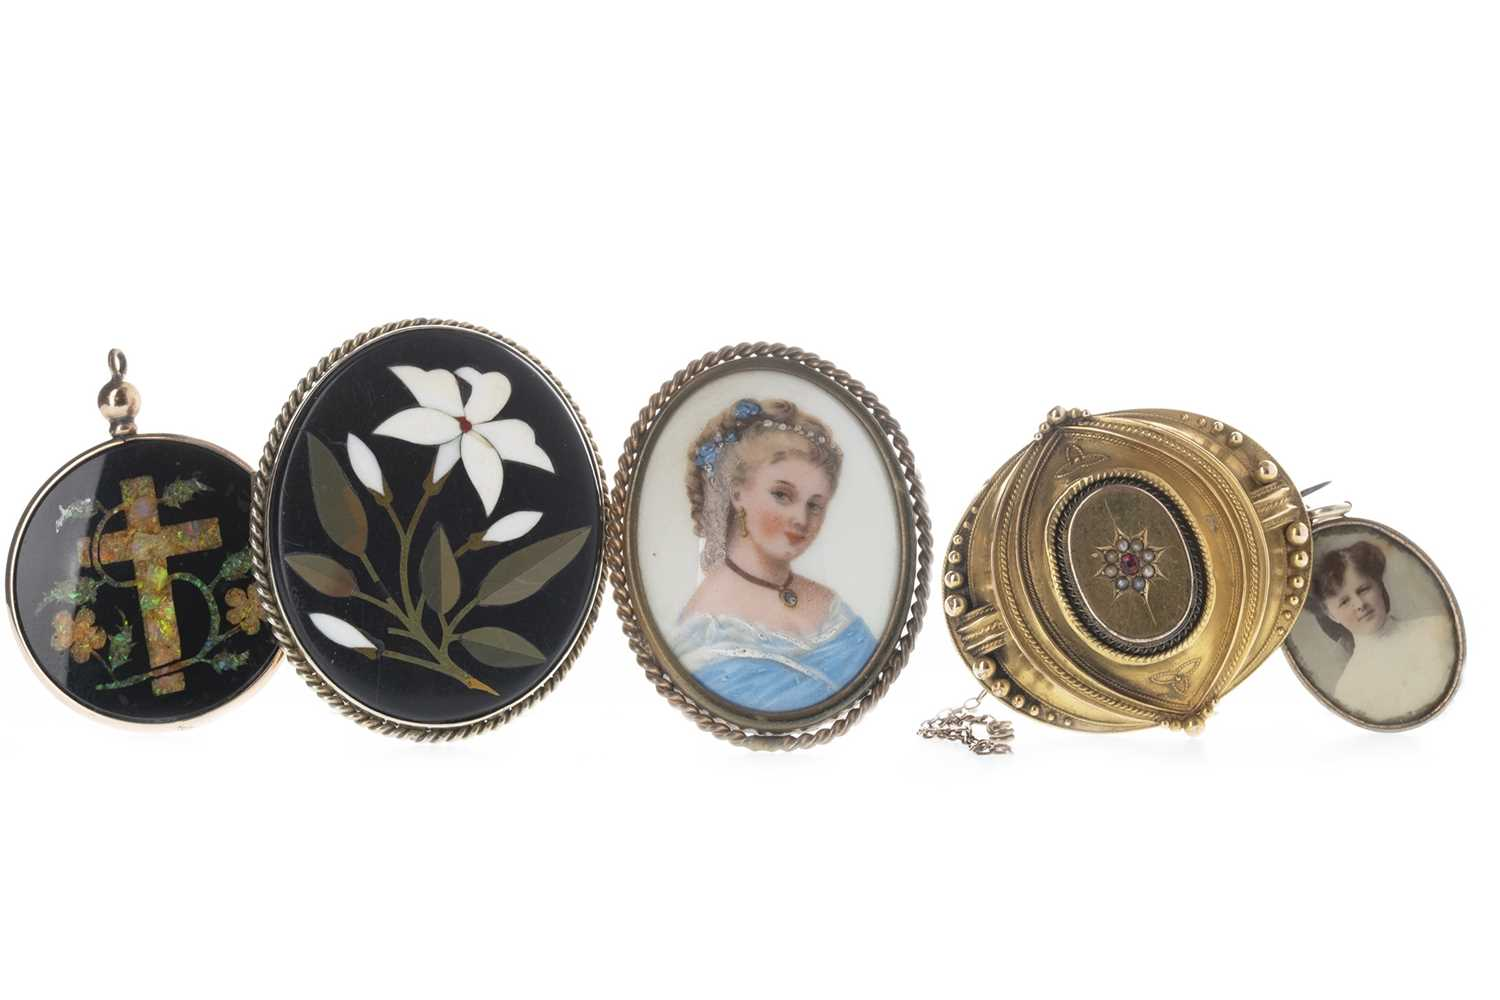 Lot 311-A MOURNING BROOCH, PORTRAIT PENDANTS AND OTHER JEWELLERY